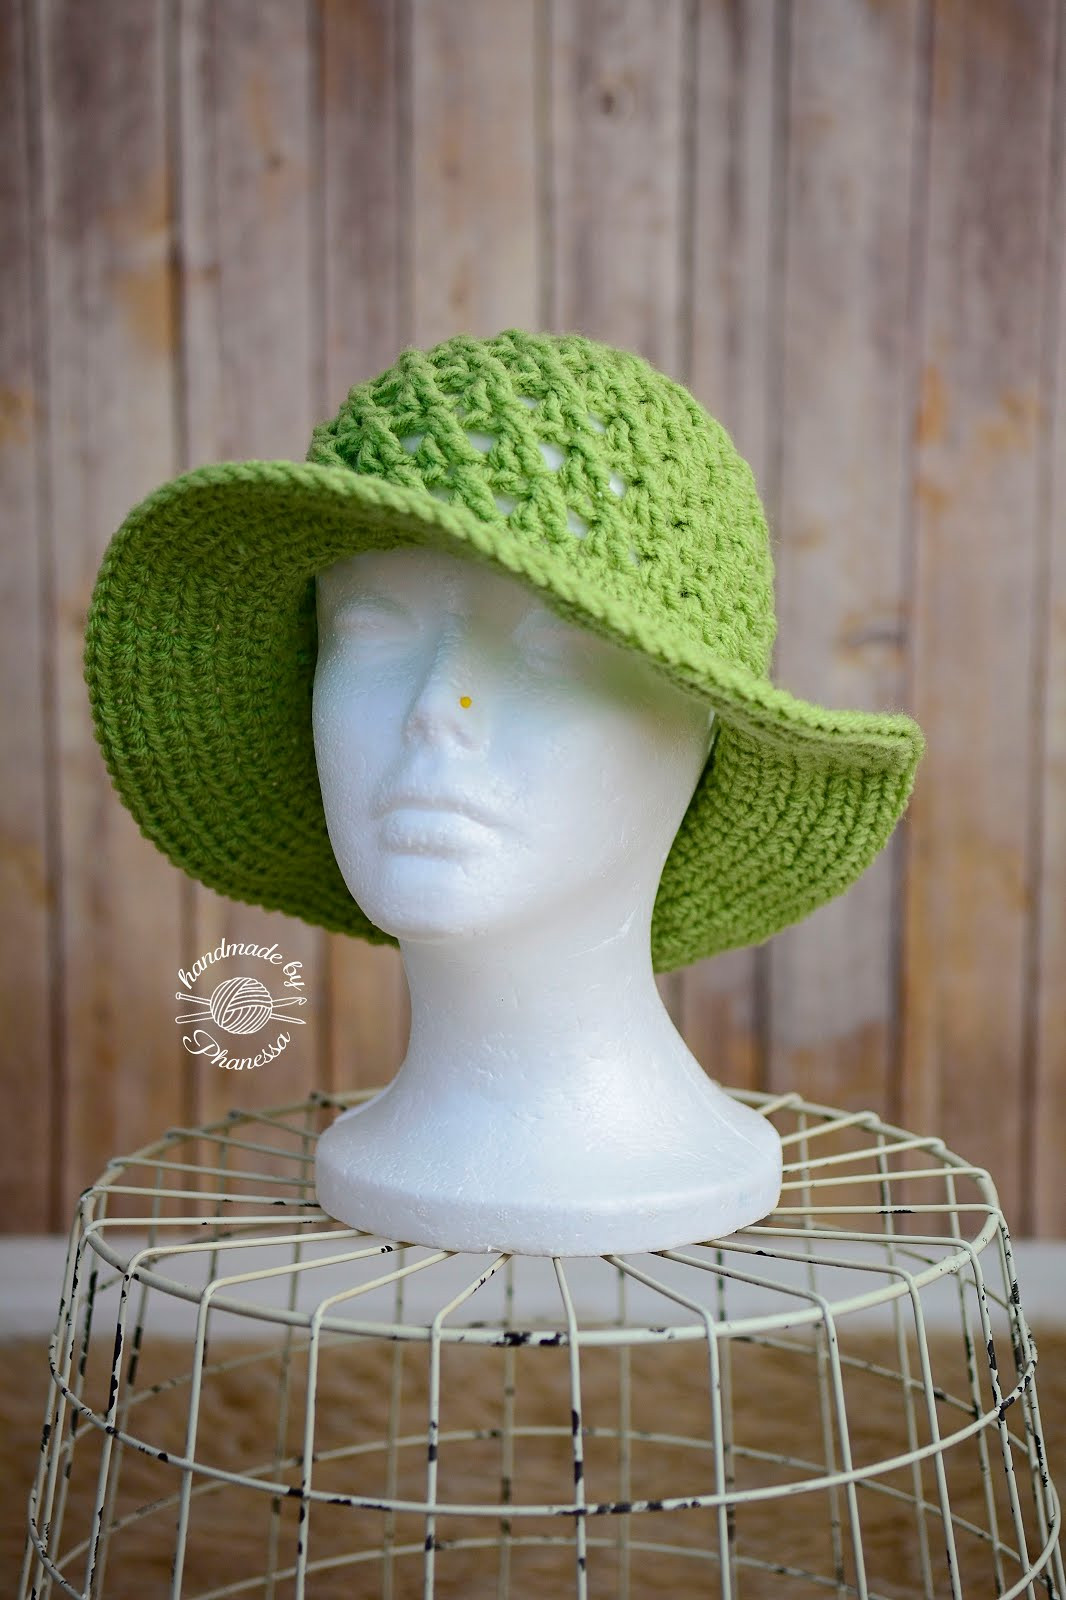 New Handmade by Phanessa Crochet Sun Hat Pattern Crochet Summer Hat Of Awesome 45 Images Crochet Summer Hat